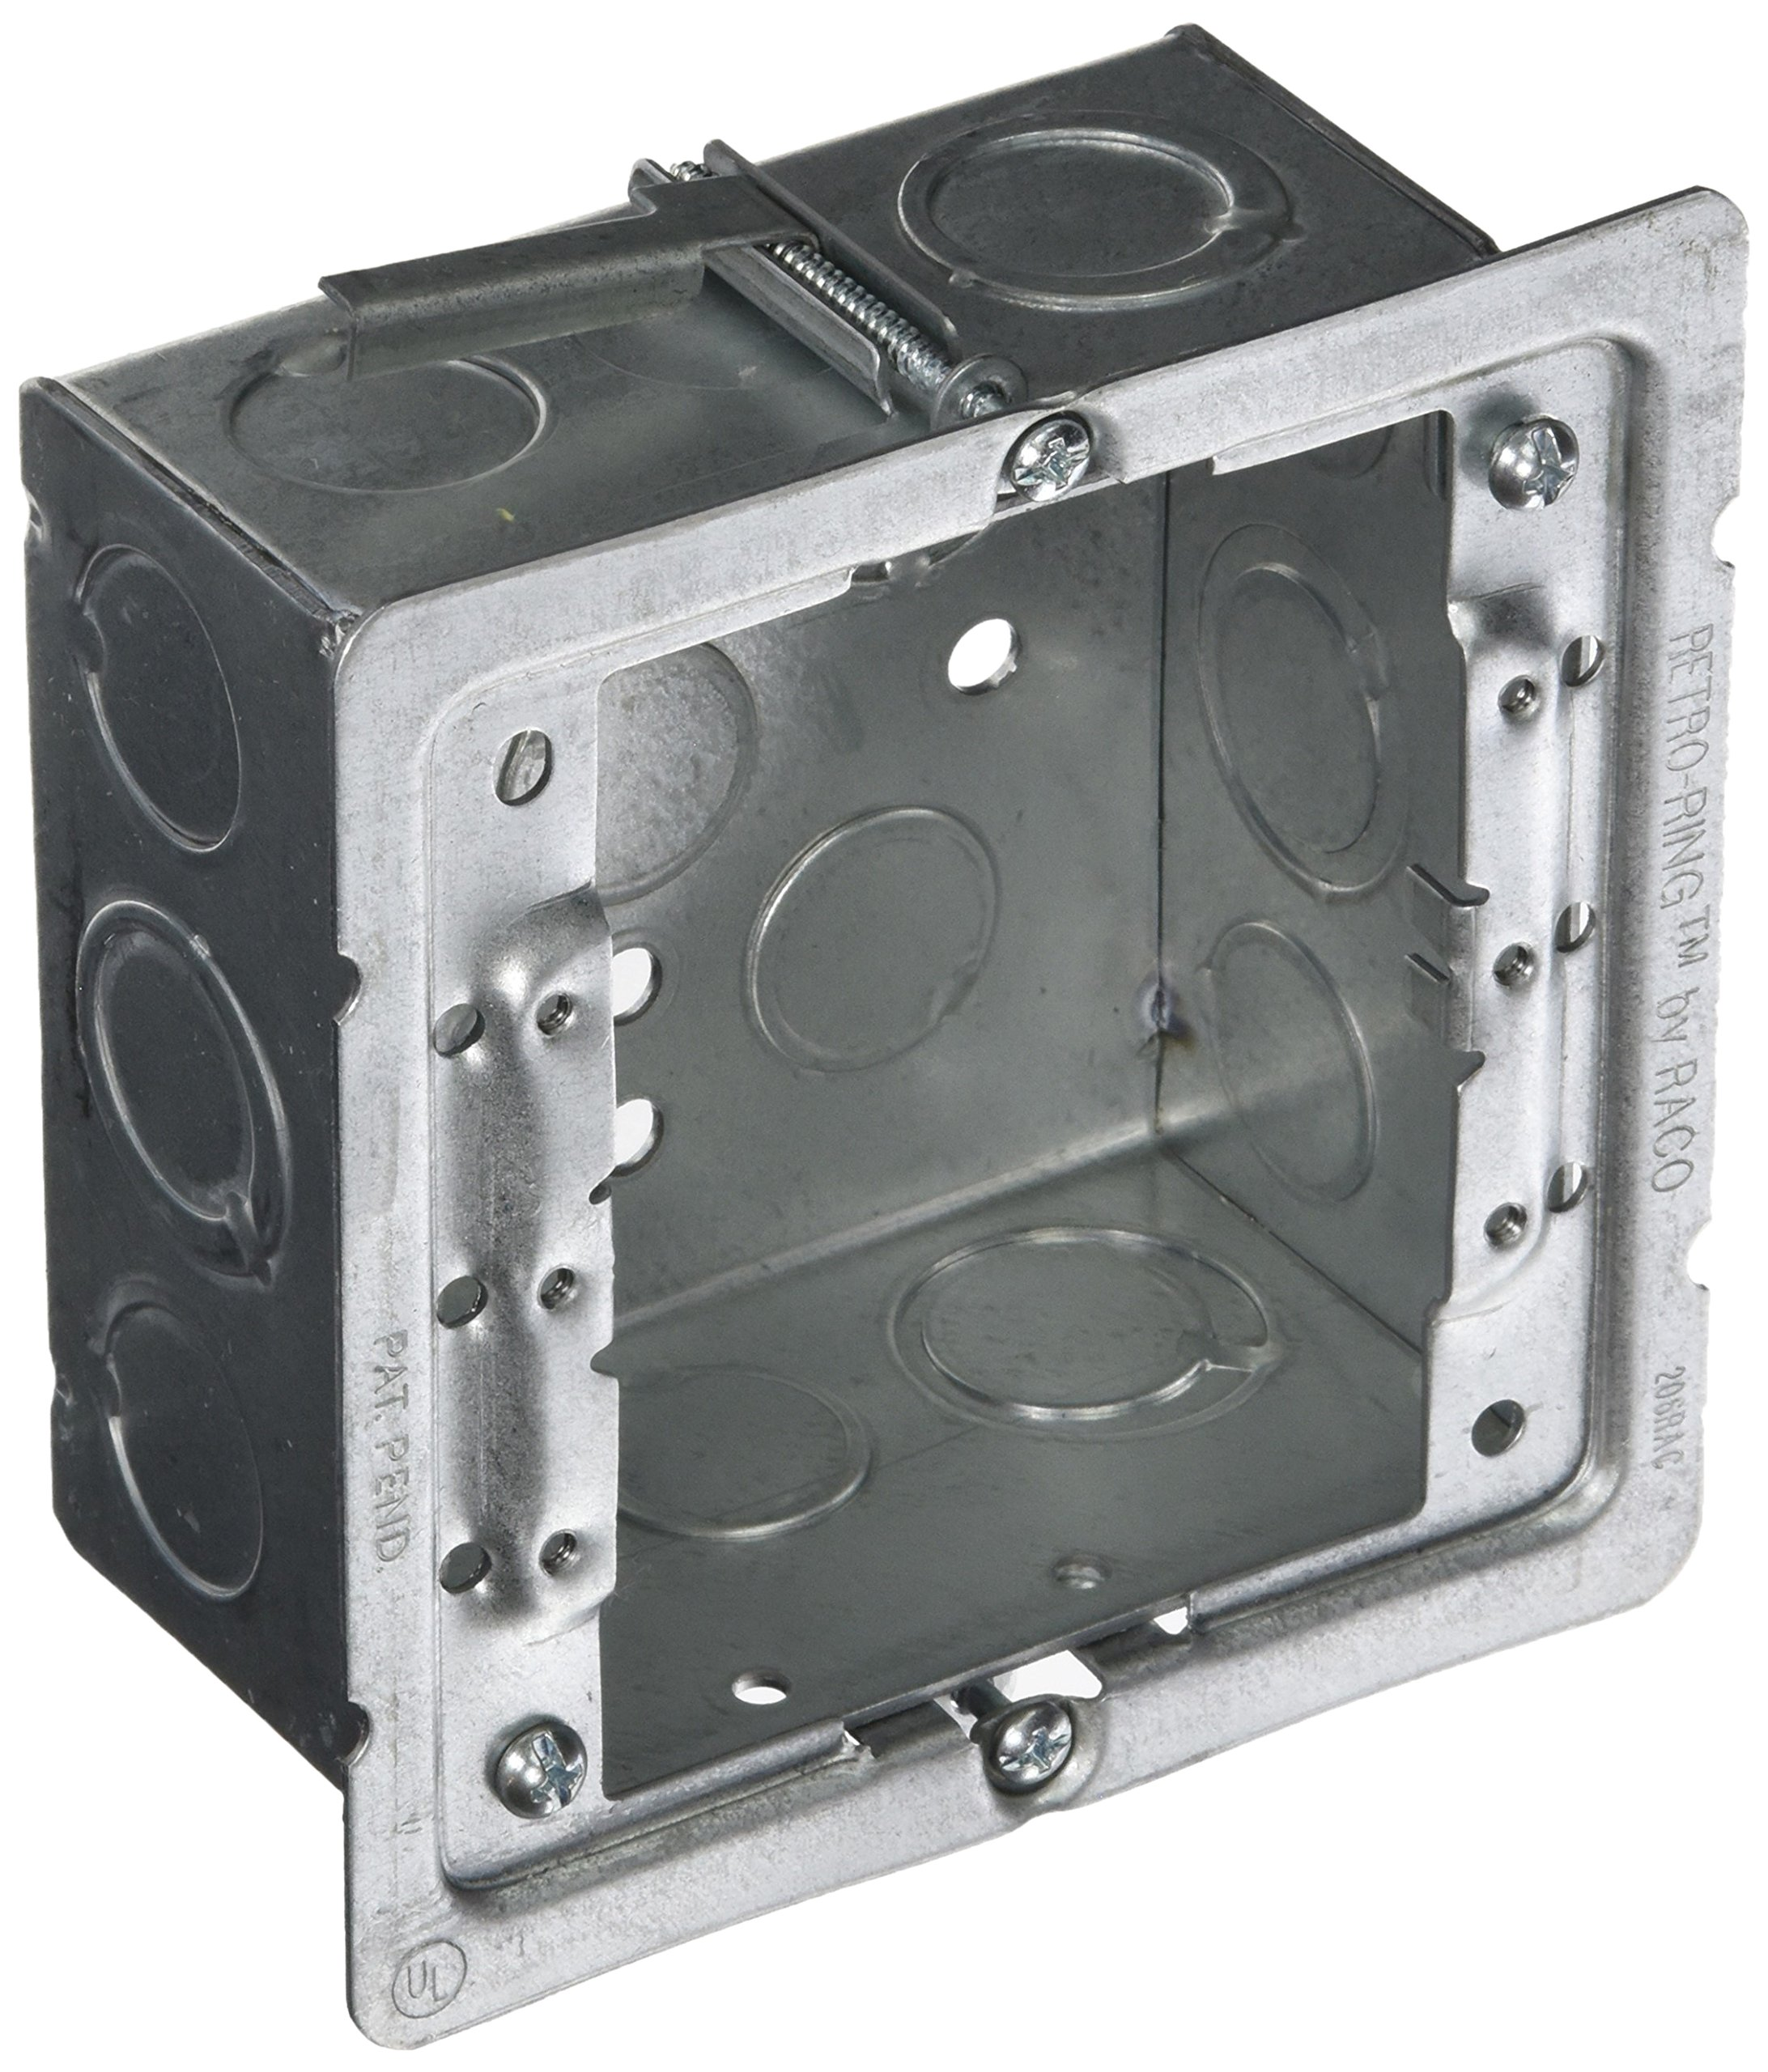 Hubbell-Raco 232-OW Old Work 2-1/8-Inch Deep Square Box Kit, Welded with 206RAC, (8) 1/2-Inch & (4) TKO Eccentric Side Knockouts, 4-Inch by Hubbell (Image #1)